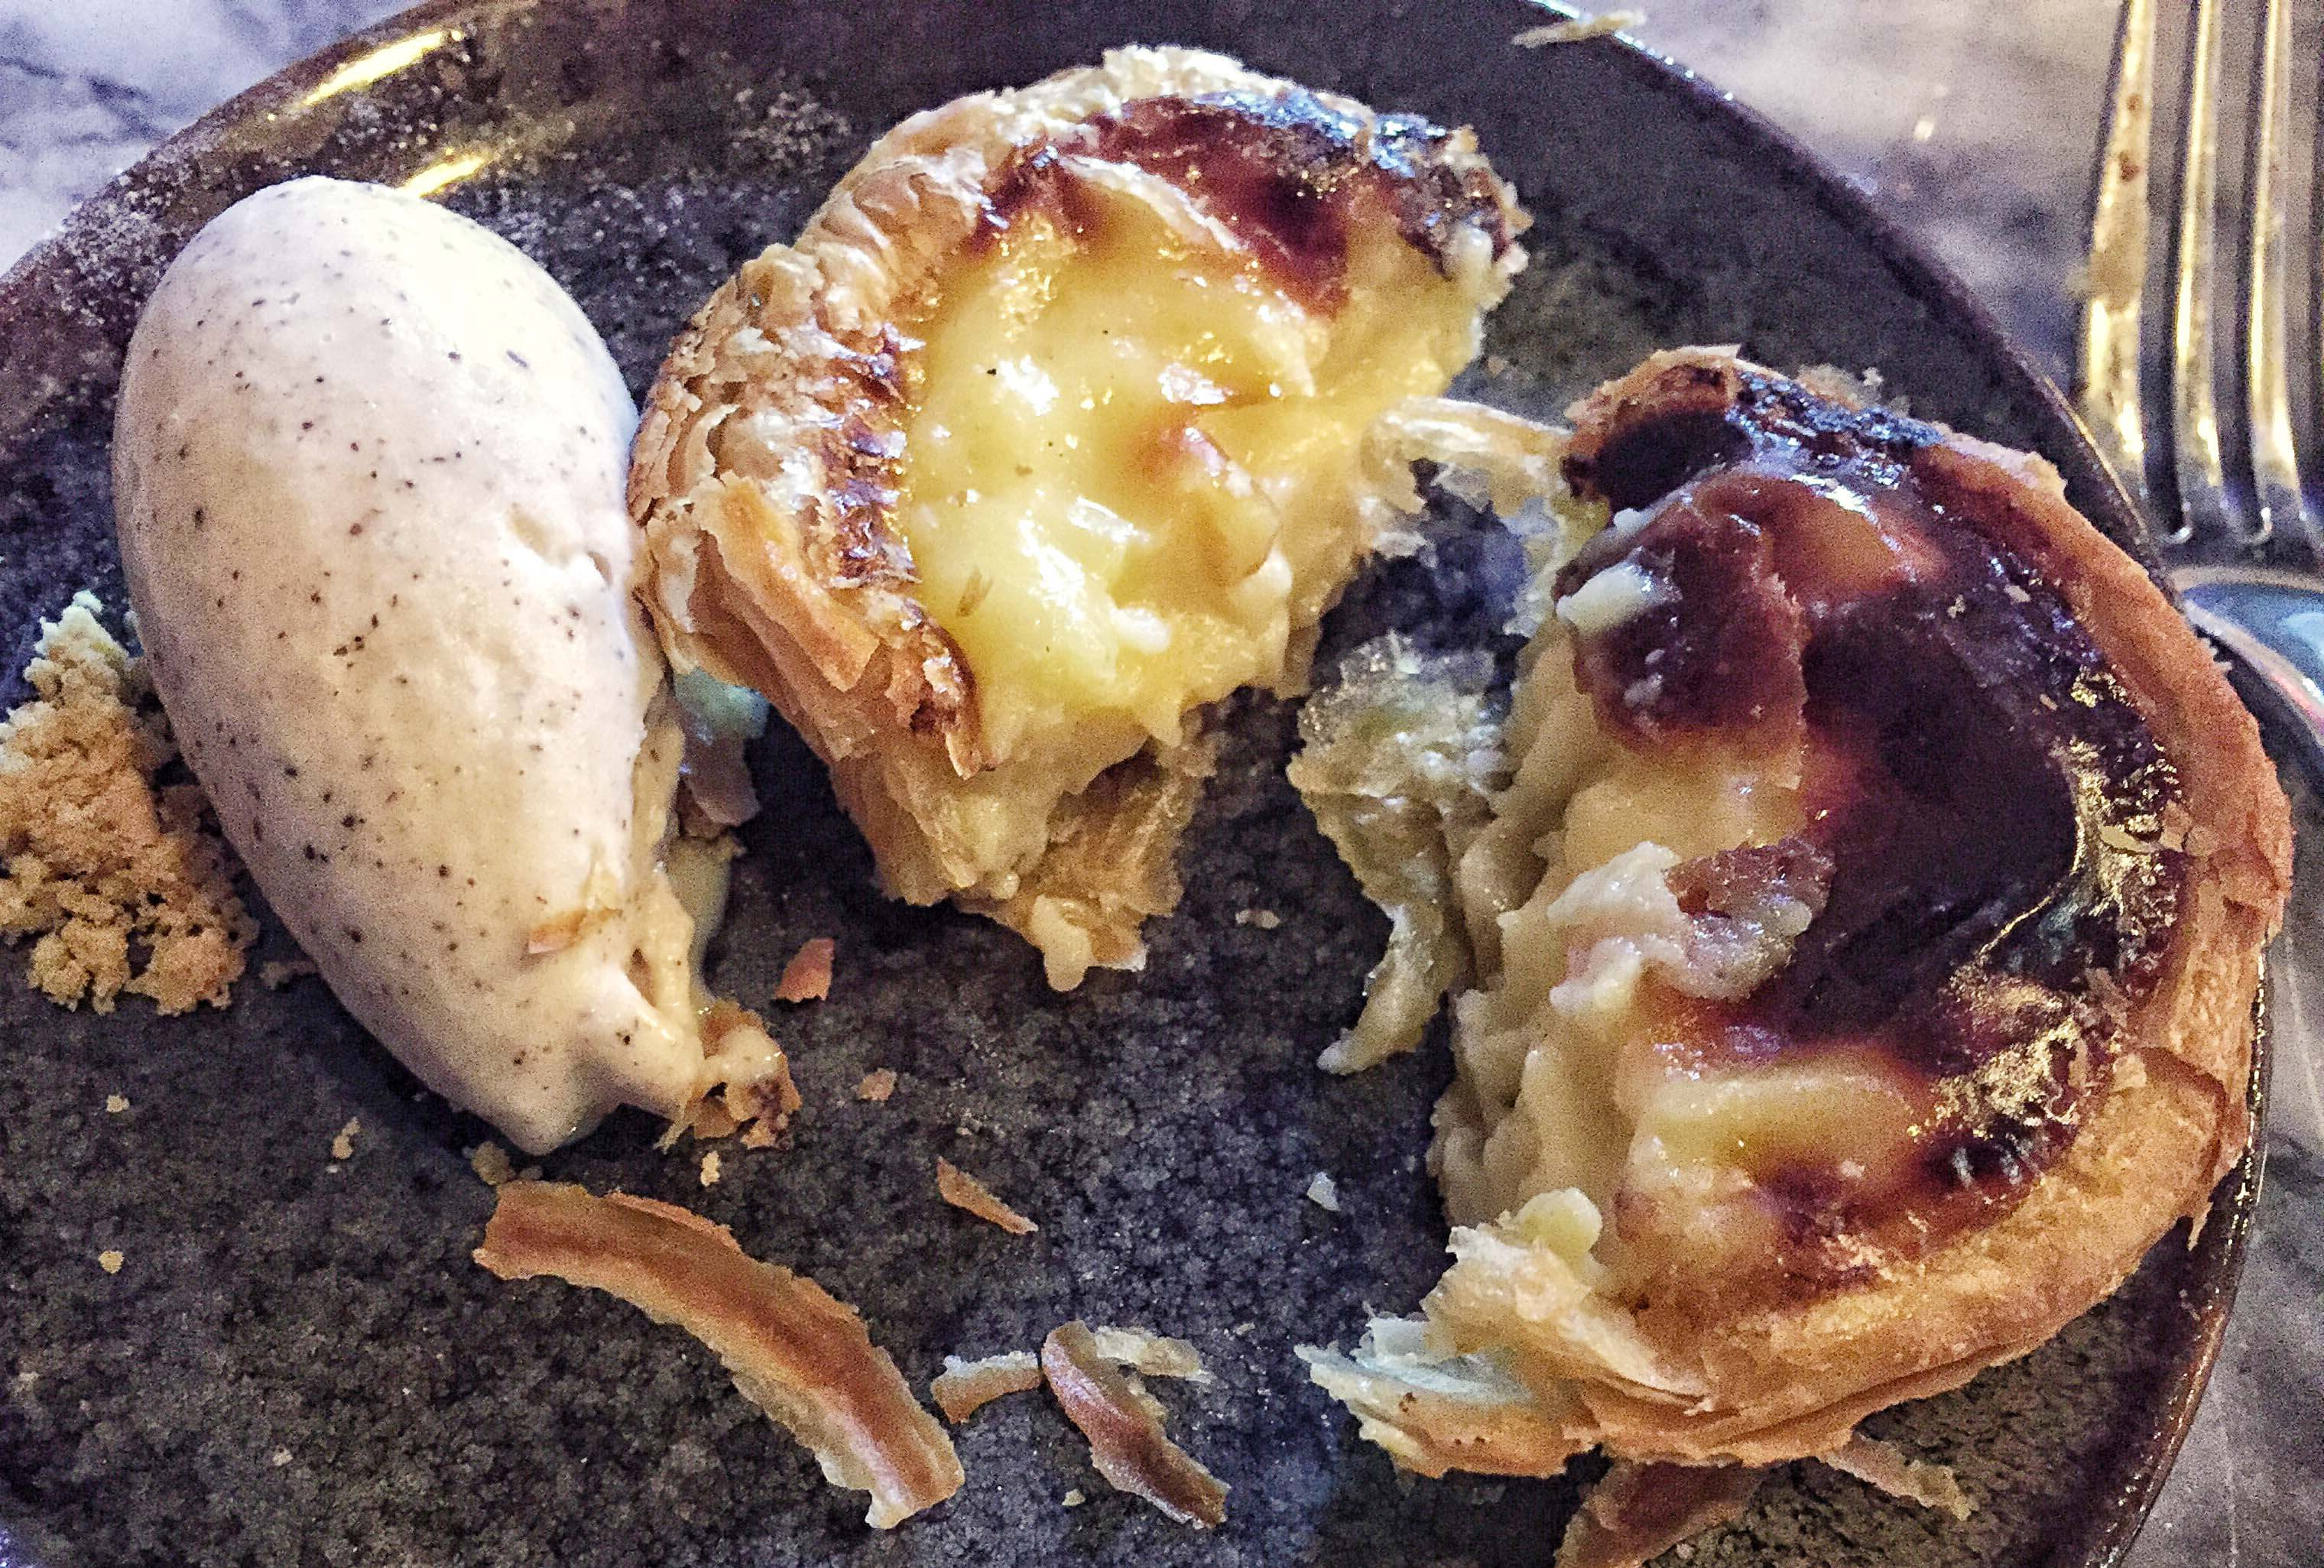 Pastel de nata (custard tart) with cinnamon ice cream at Bar Douro, London Bridge, London